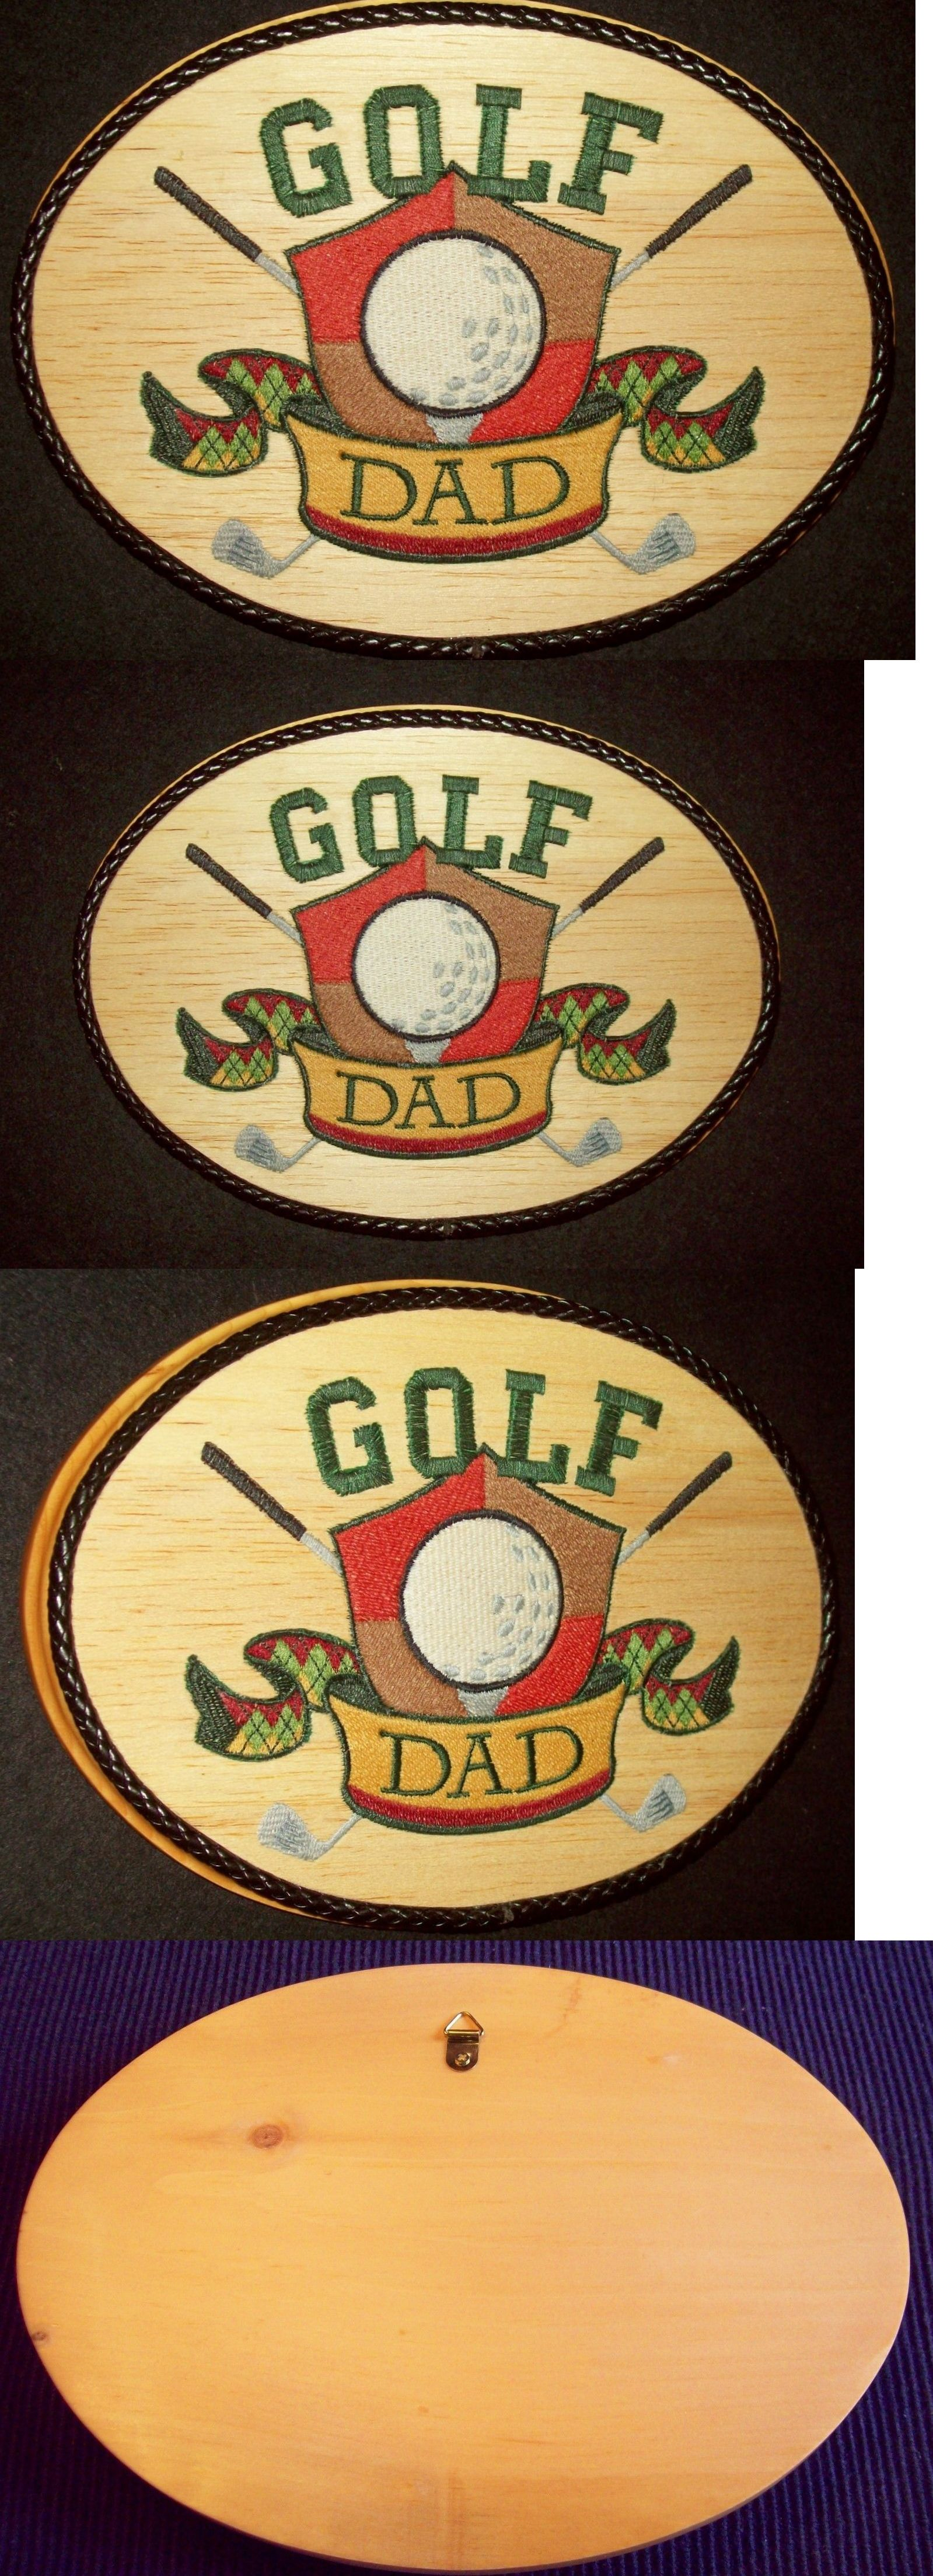 Wall Hangings 83904: Golf Wall Decor Golf Dad Crest Multi-Color ...